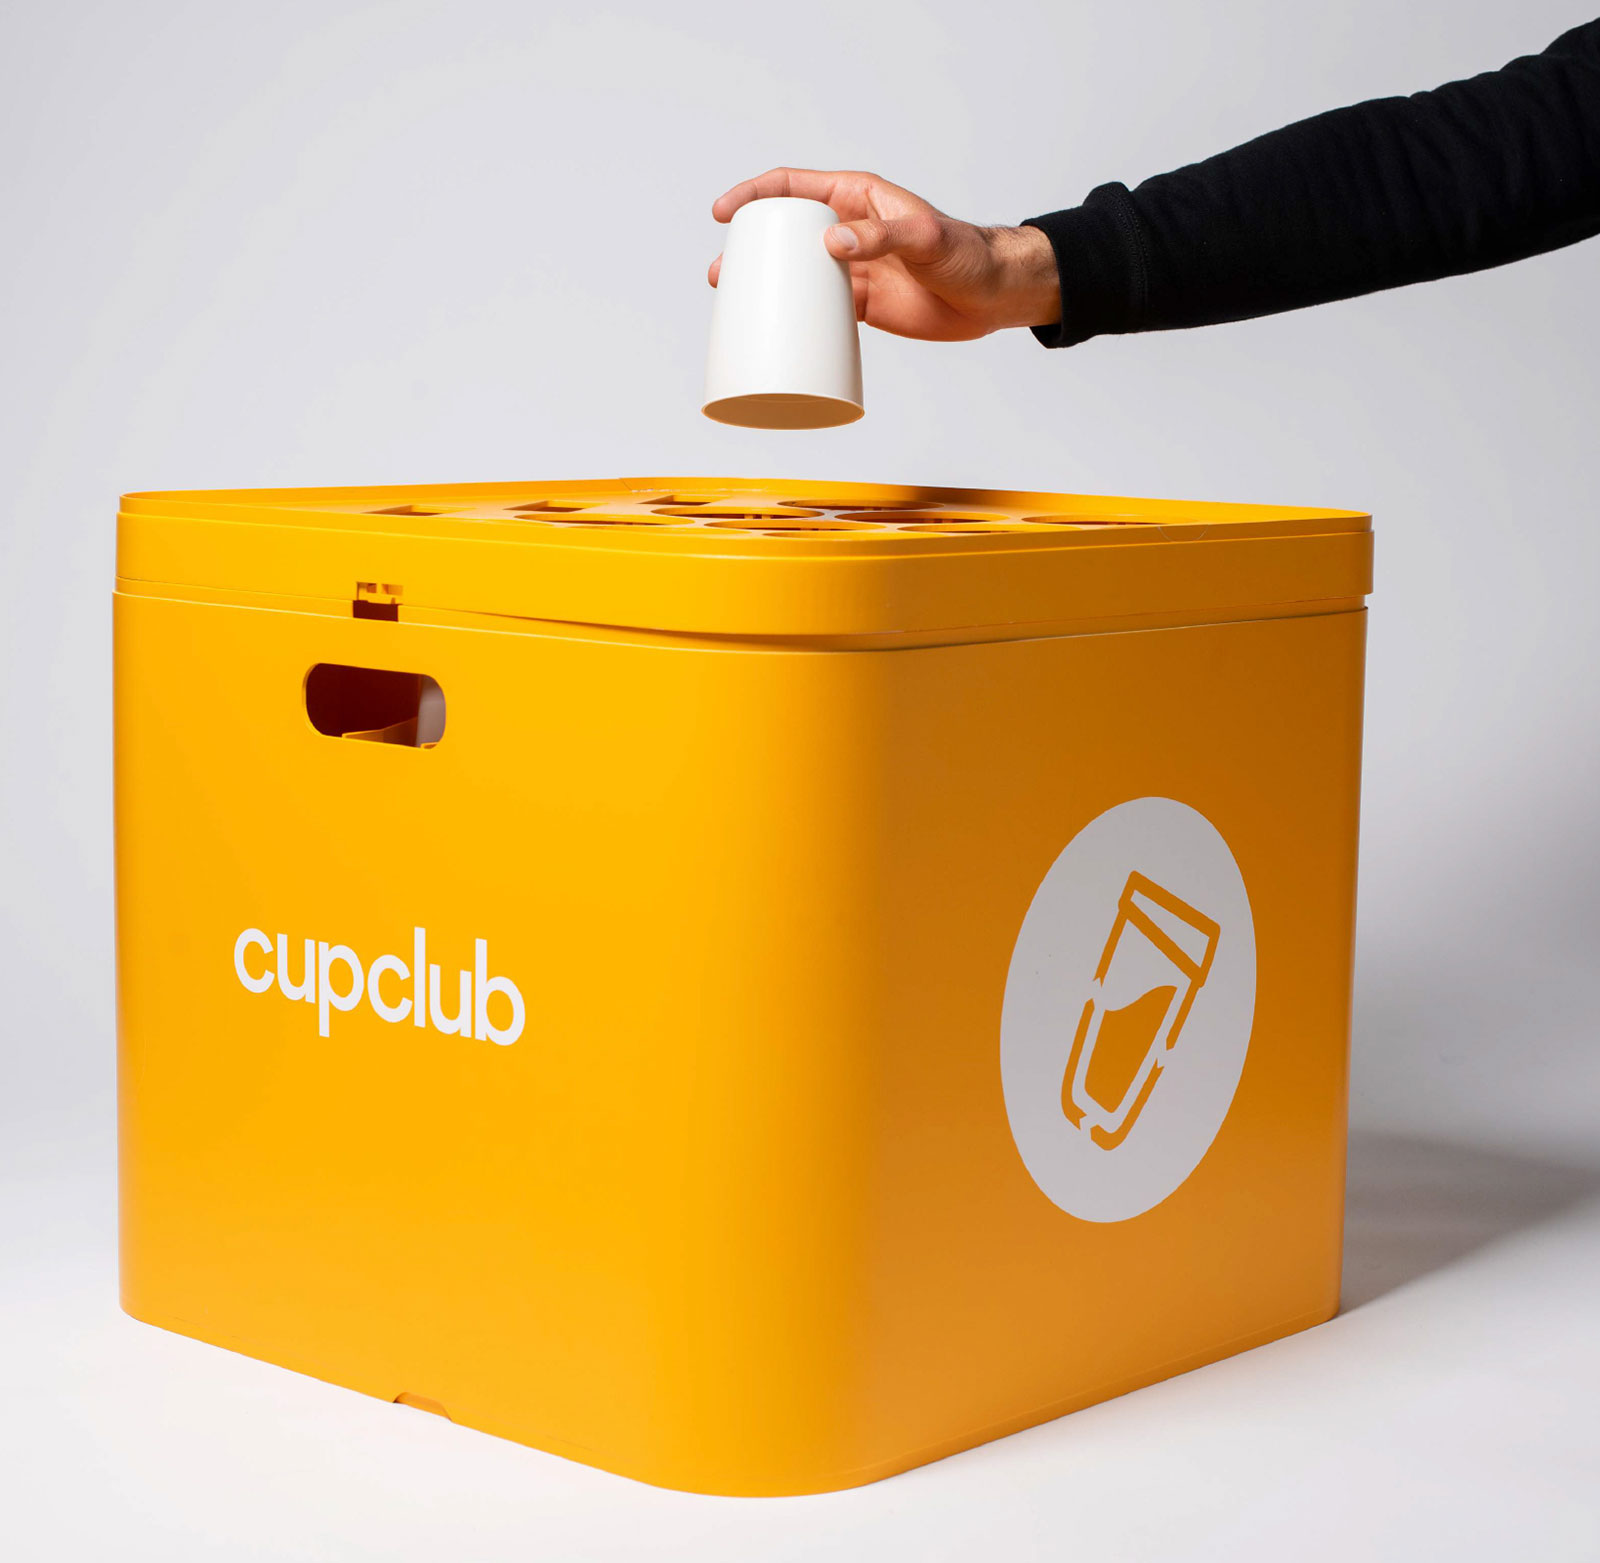 CupClub uses RFID chips to track and collect reusable cups. (NextGen Cup Challenge)